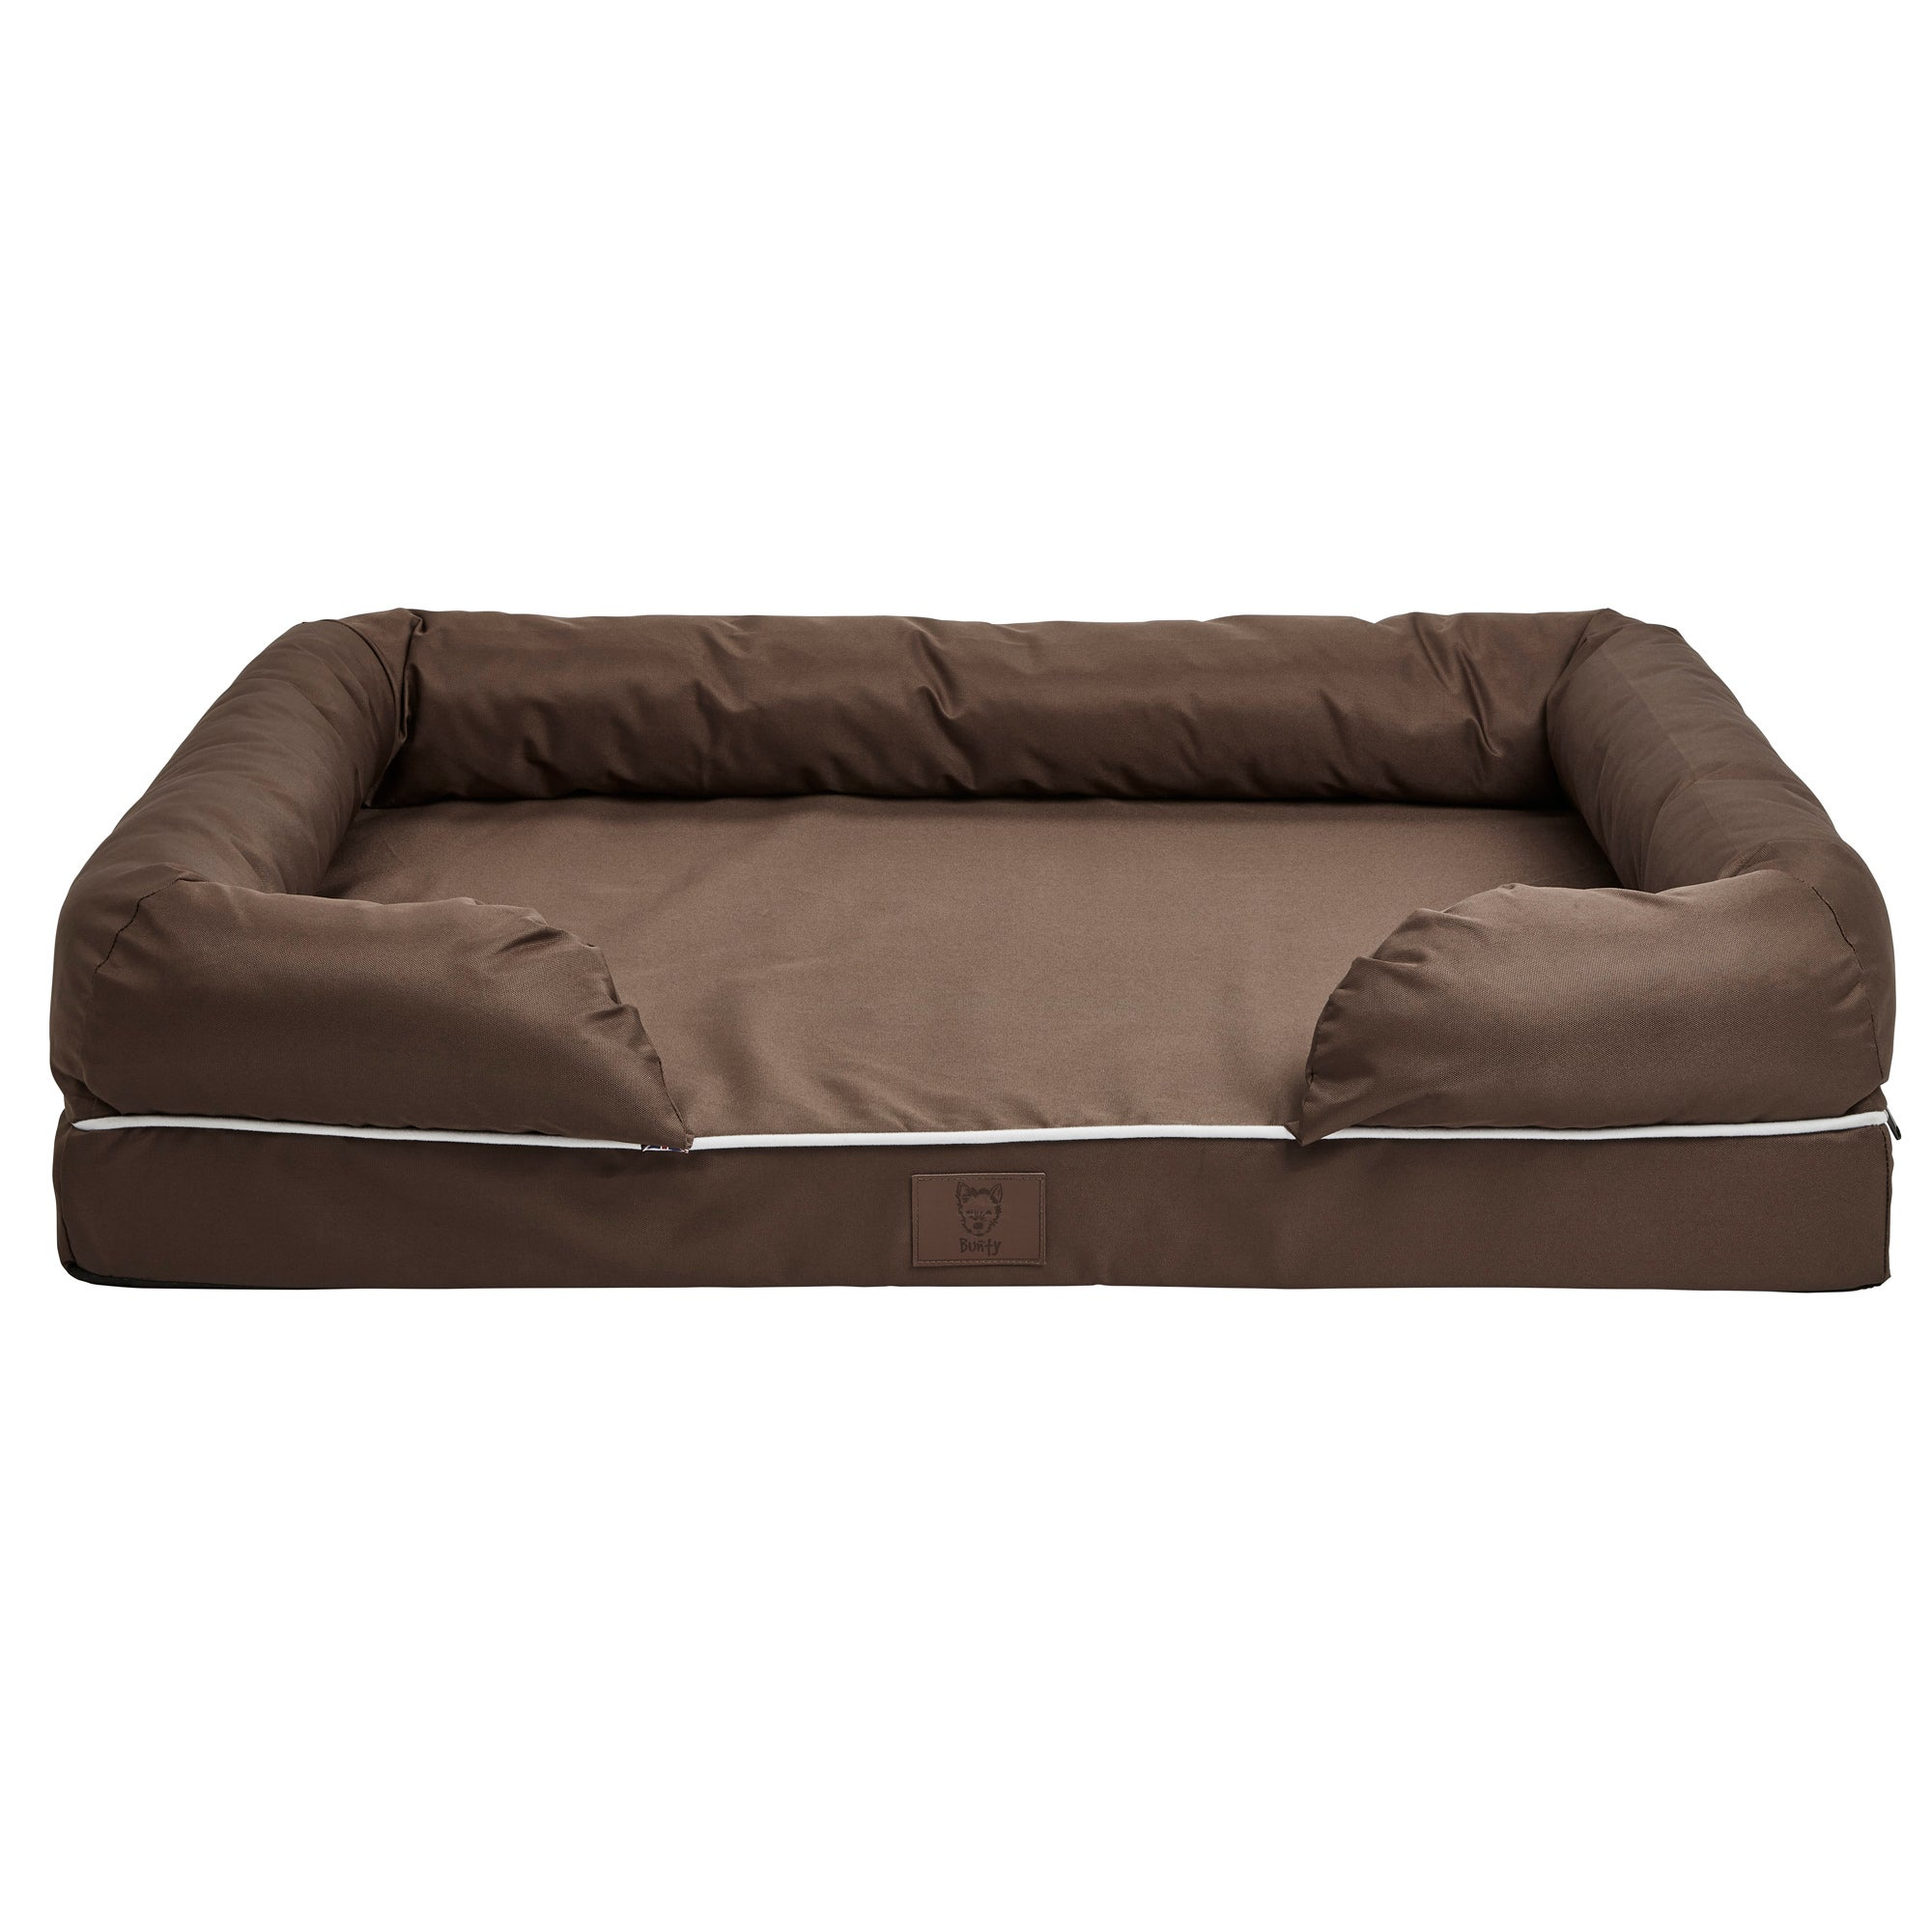 Bunty Brown Waterproof Cosy Couch Dog Bed Brown